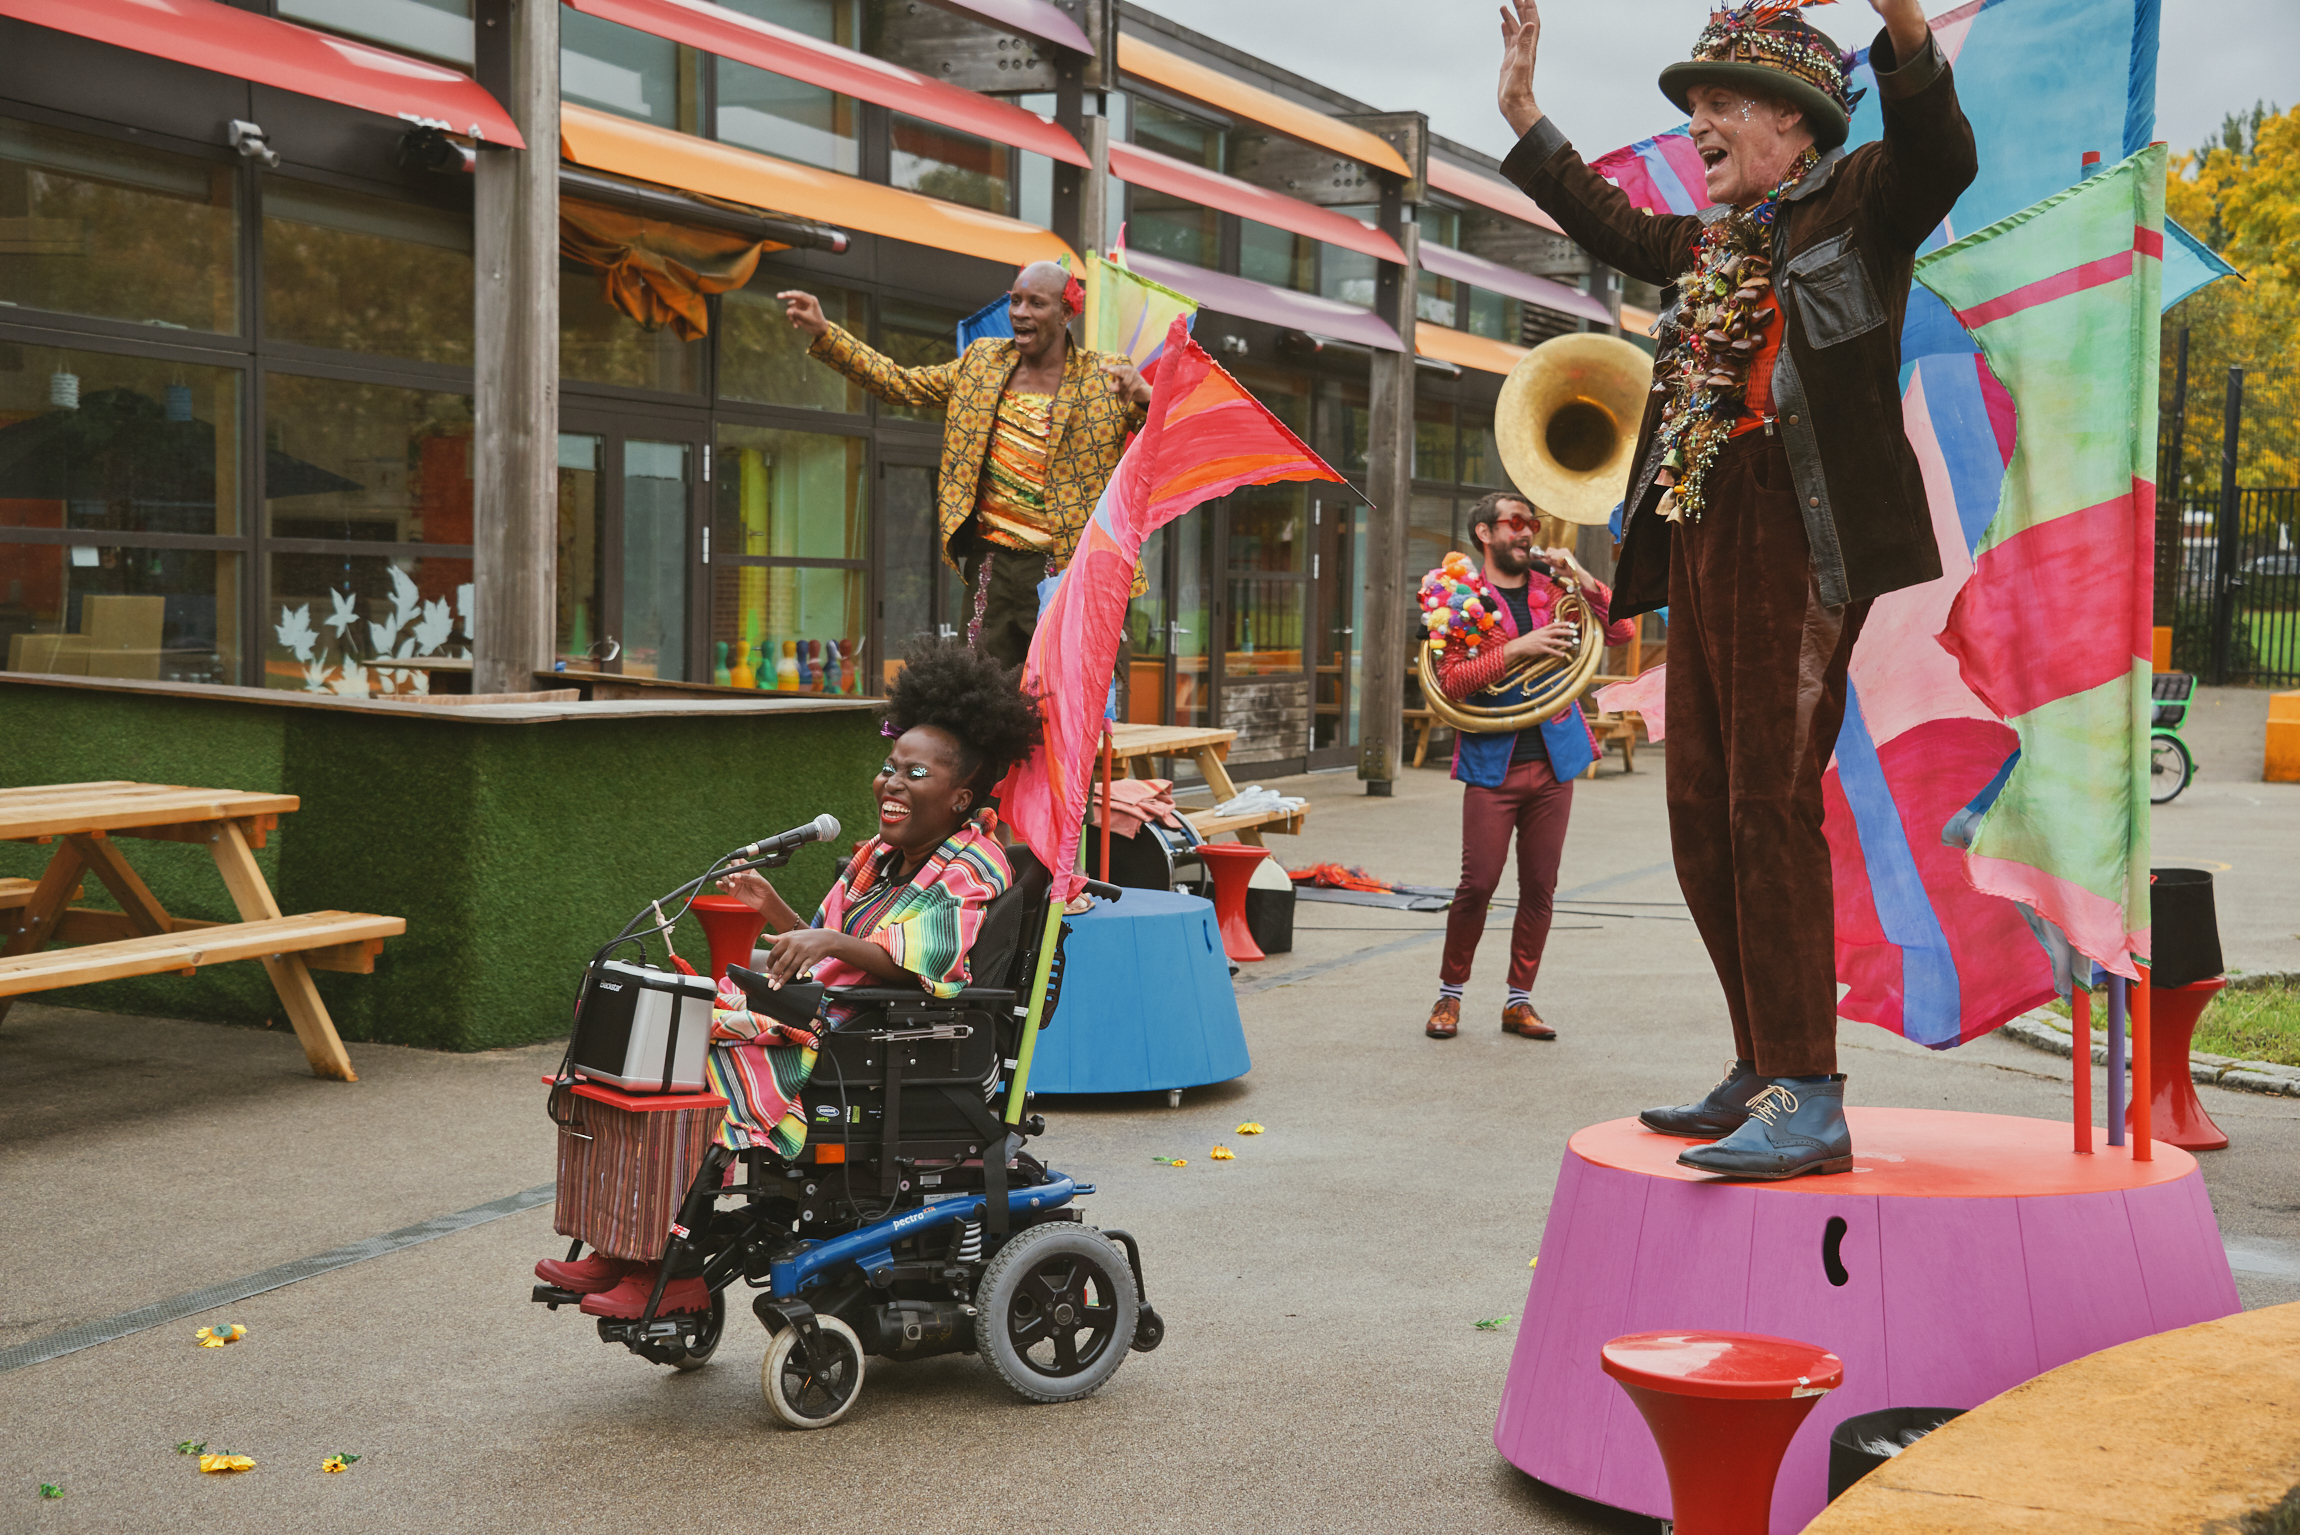 Four members of the band performing in a playground. Two of the band members stand on colourful podiums with their arms raised in the air. The singer is in a wheelchair infront of them, and a sousaphone player behind them. They are all wearing colourful festival costumes and smiling at the audience who are out of shot. Photo from Doorstep Jamboree,credit Suzi Corker